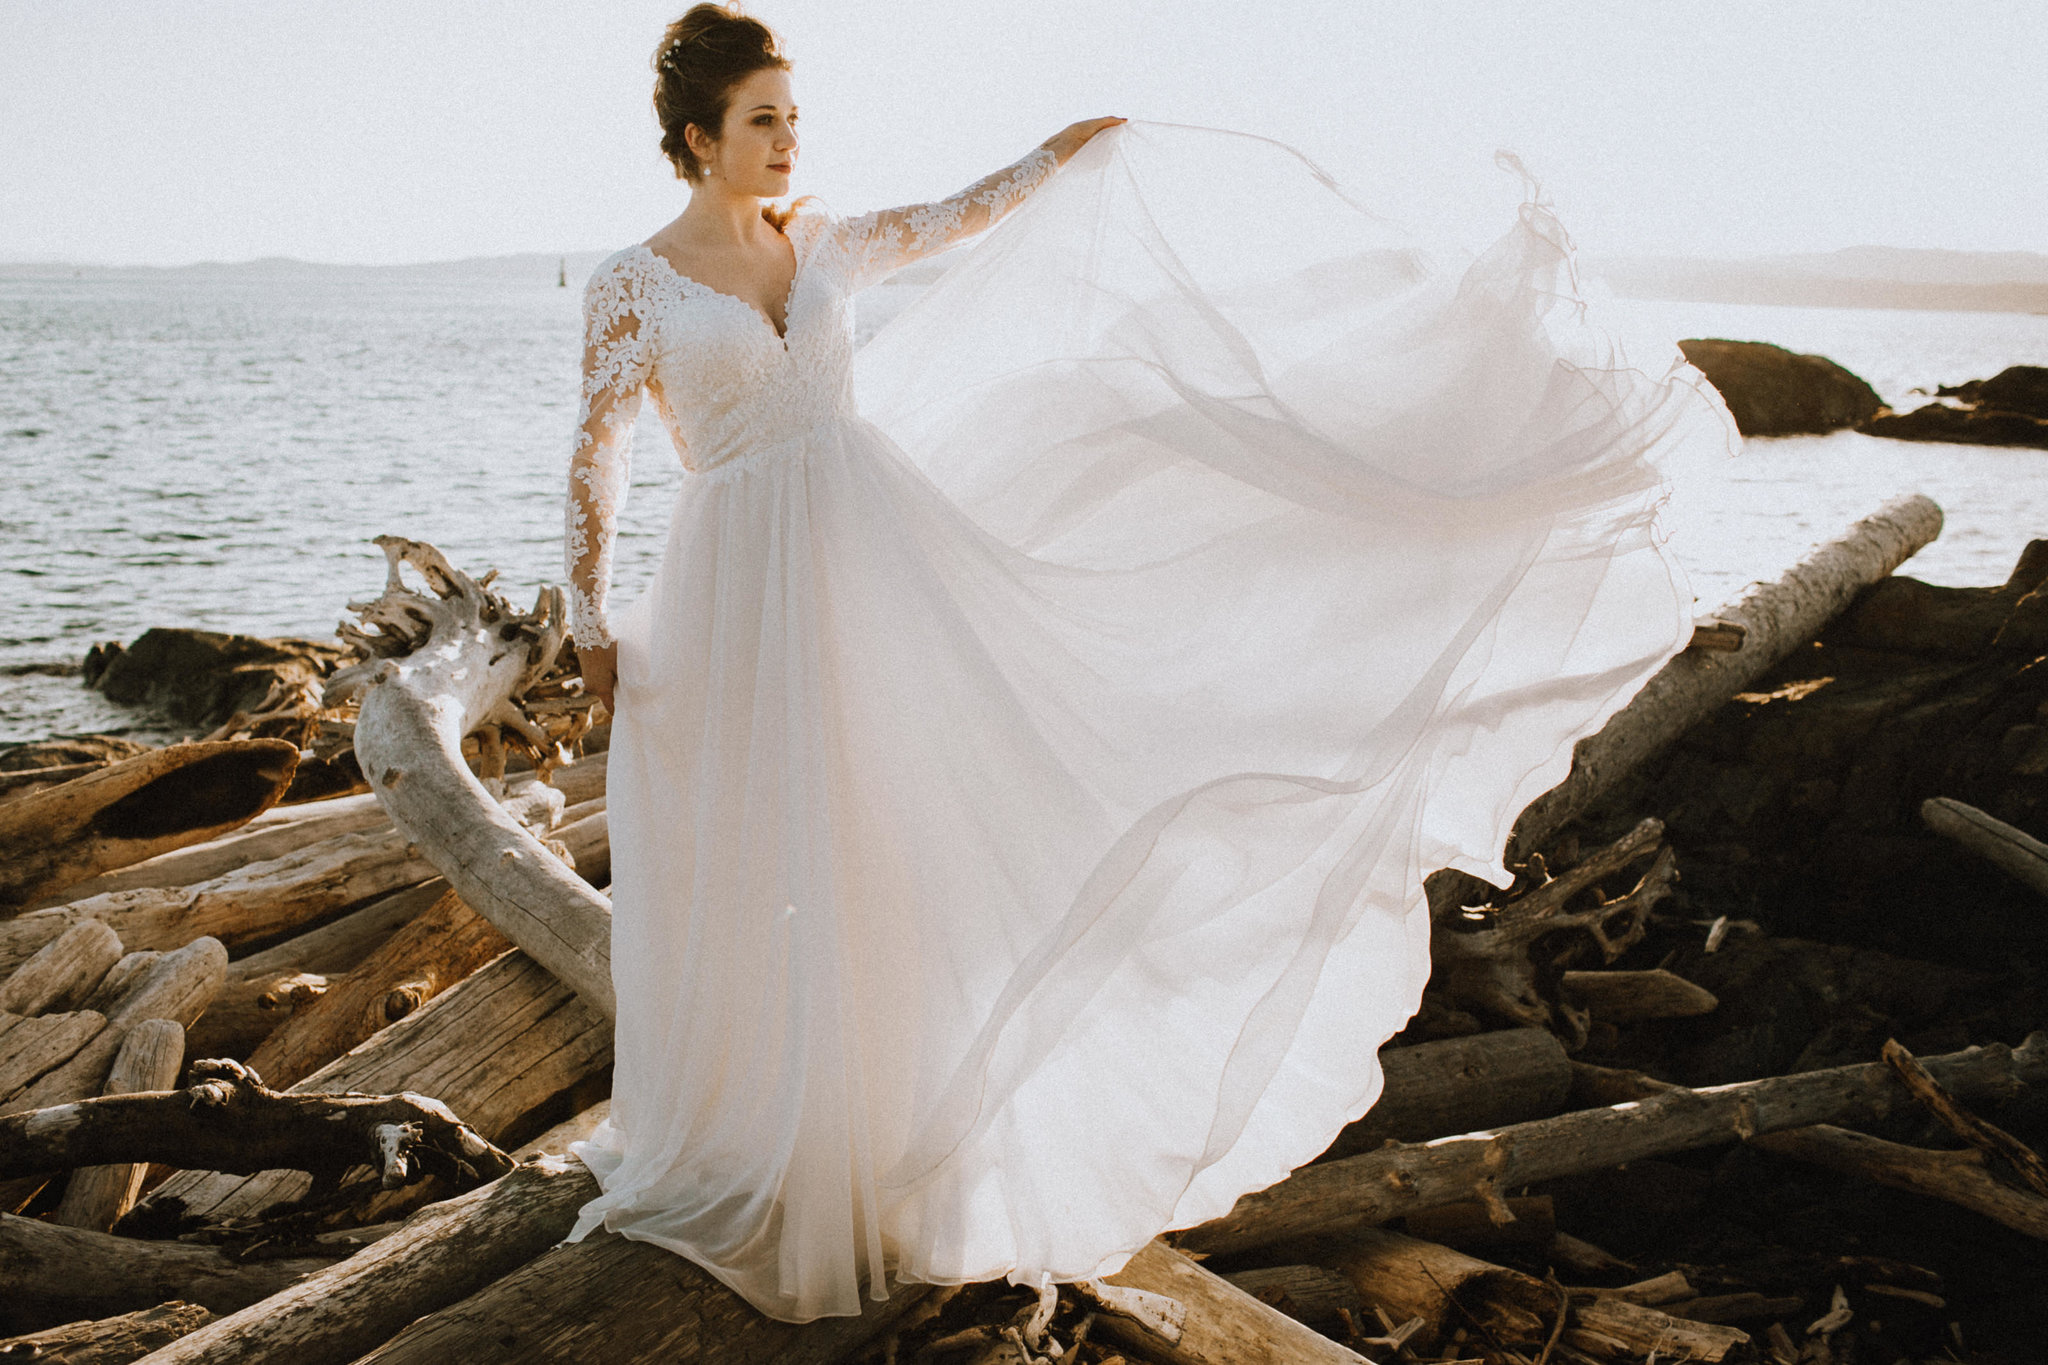 Lis Simon Gown at Beach Bridal Session Skirt in the Wind